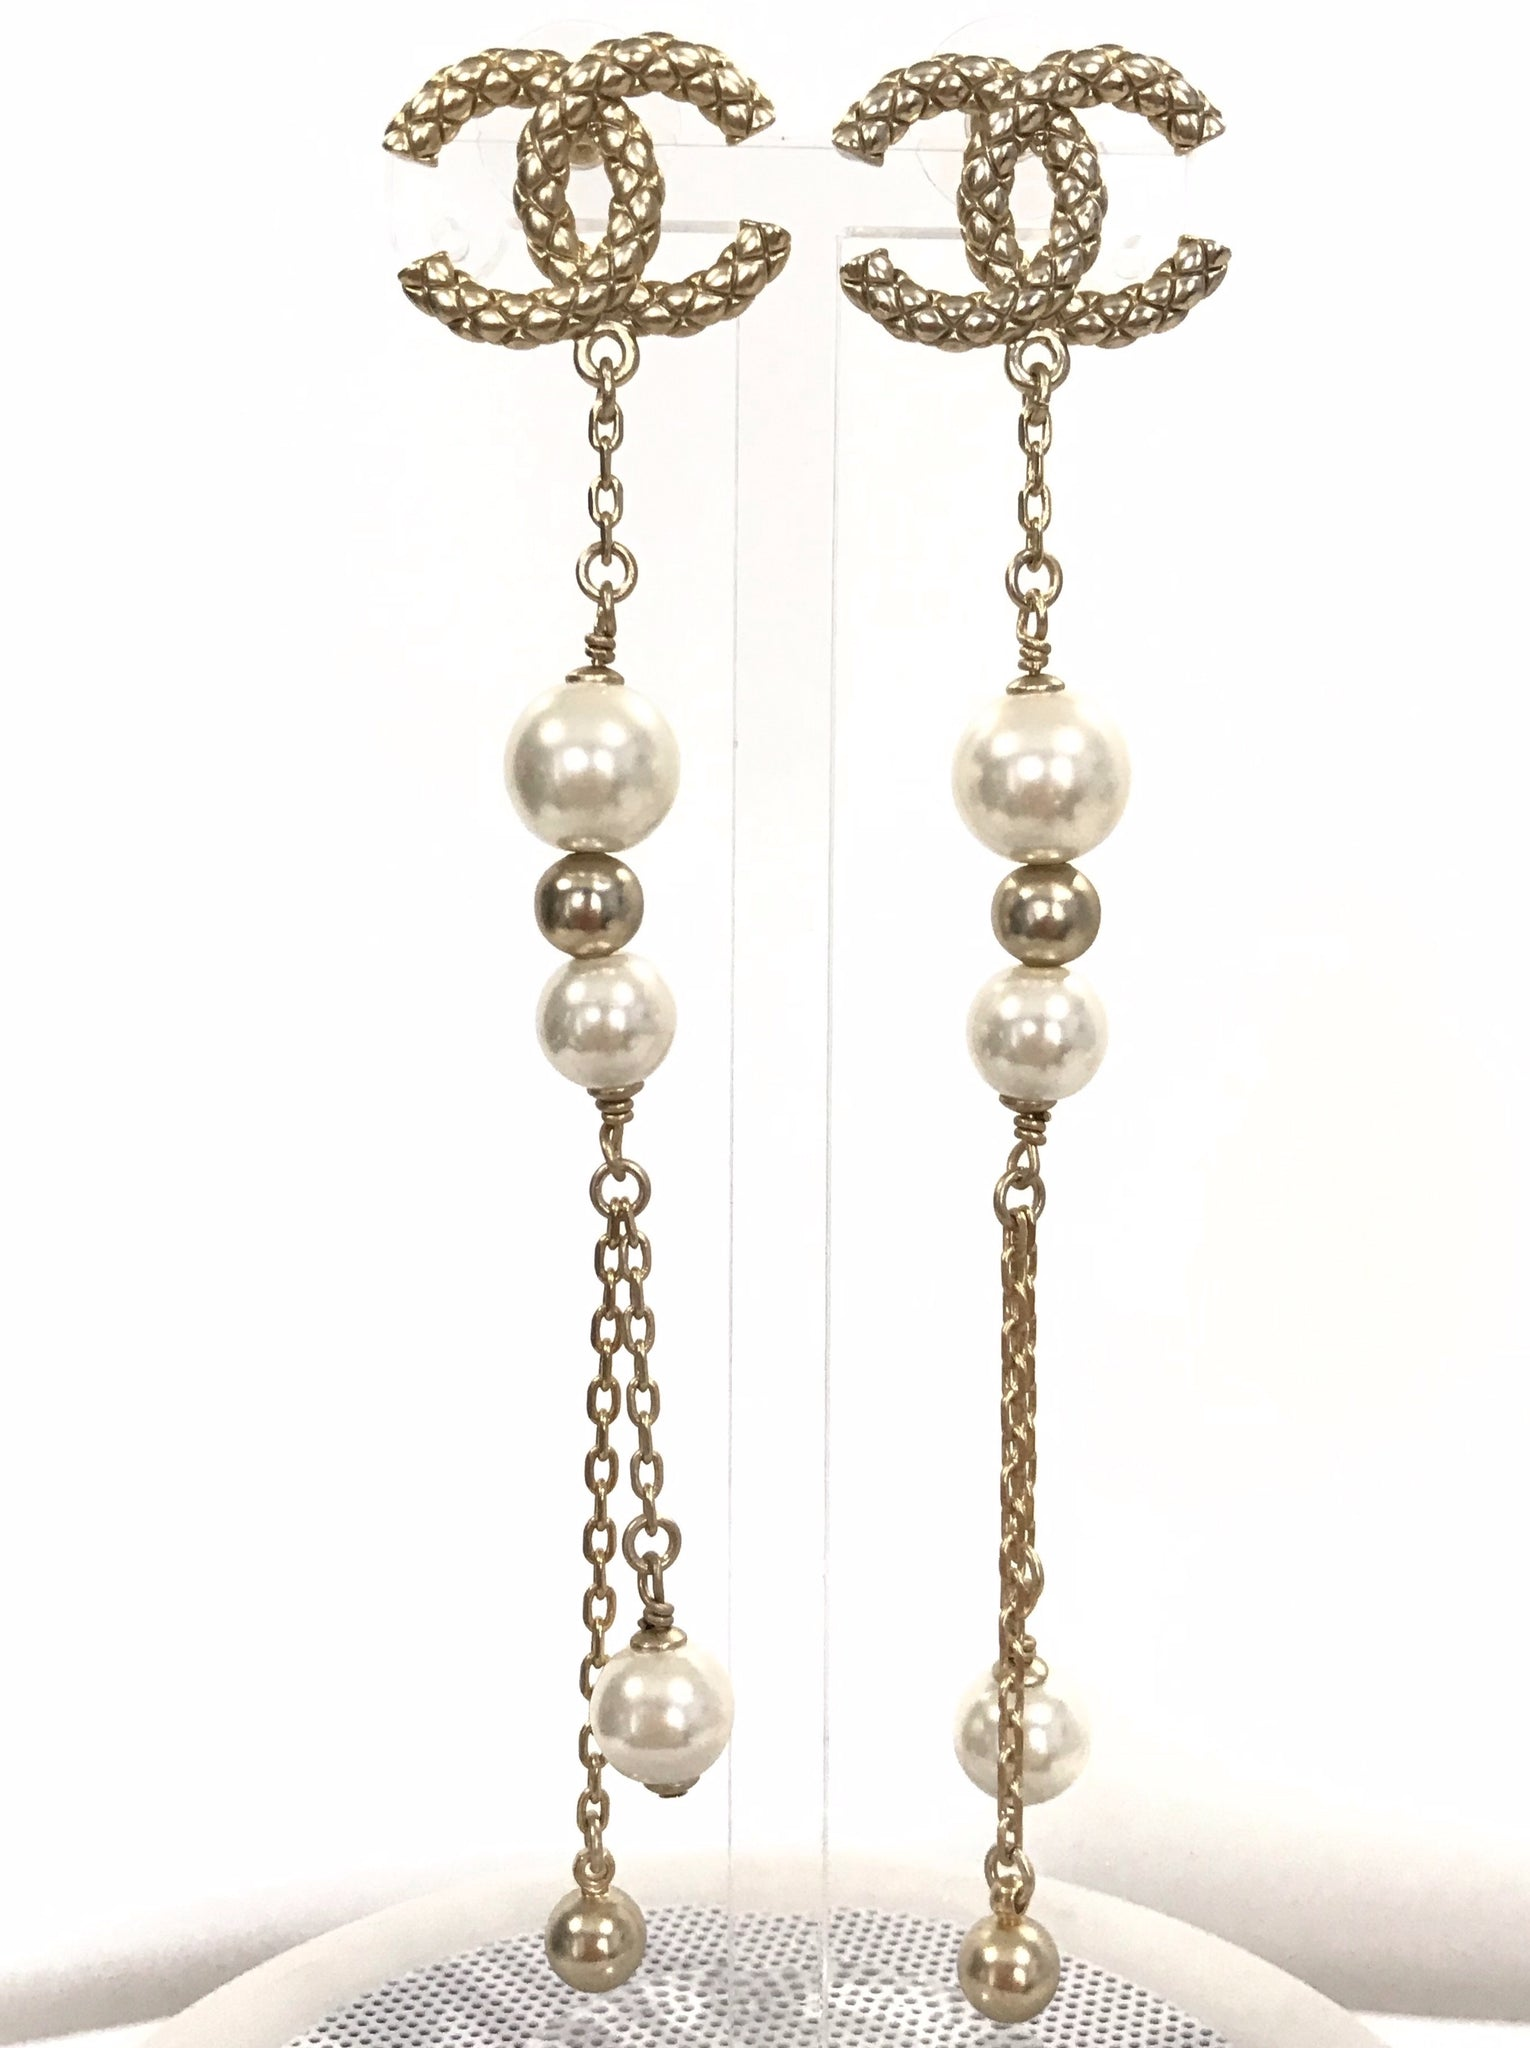 CHANEL EARRINGS DANGLE JC